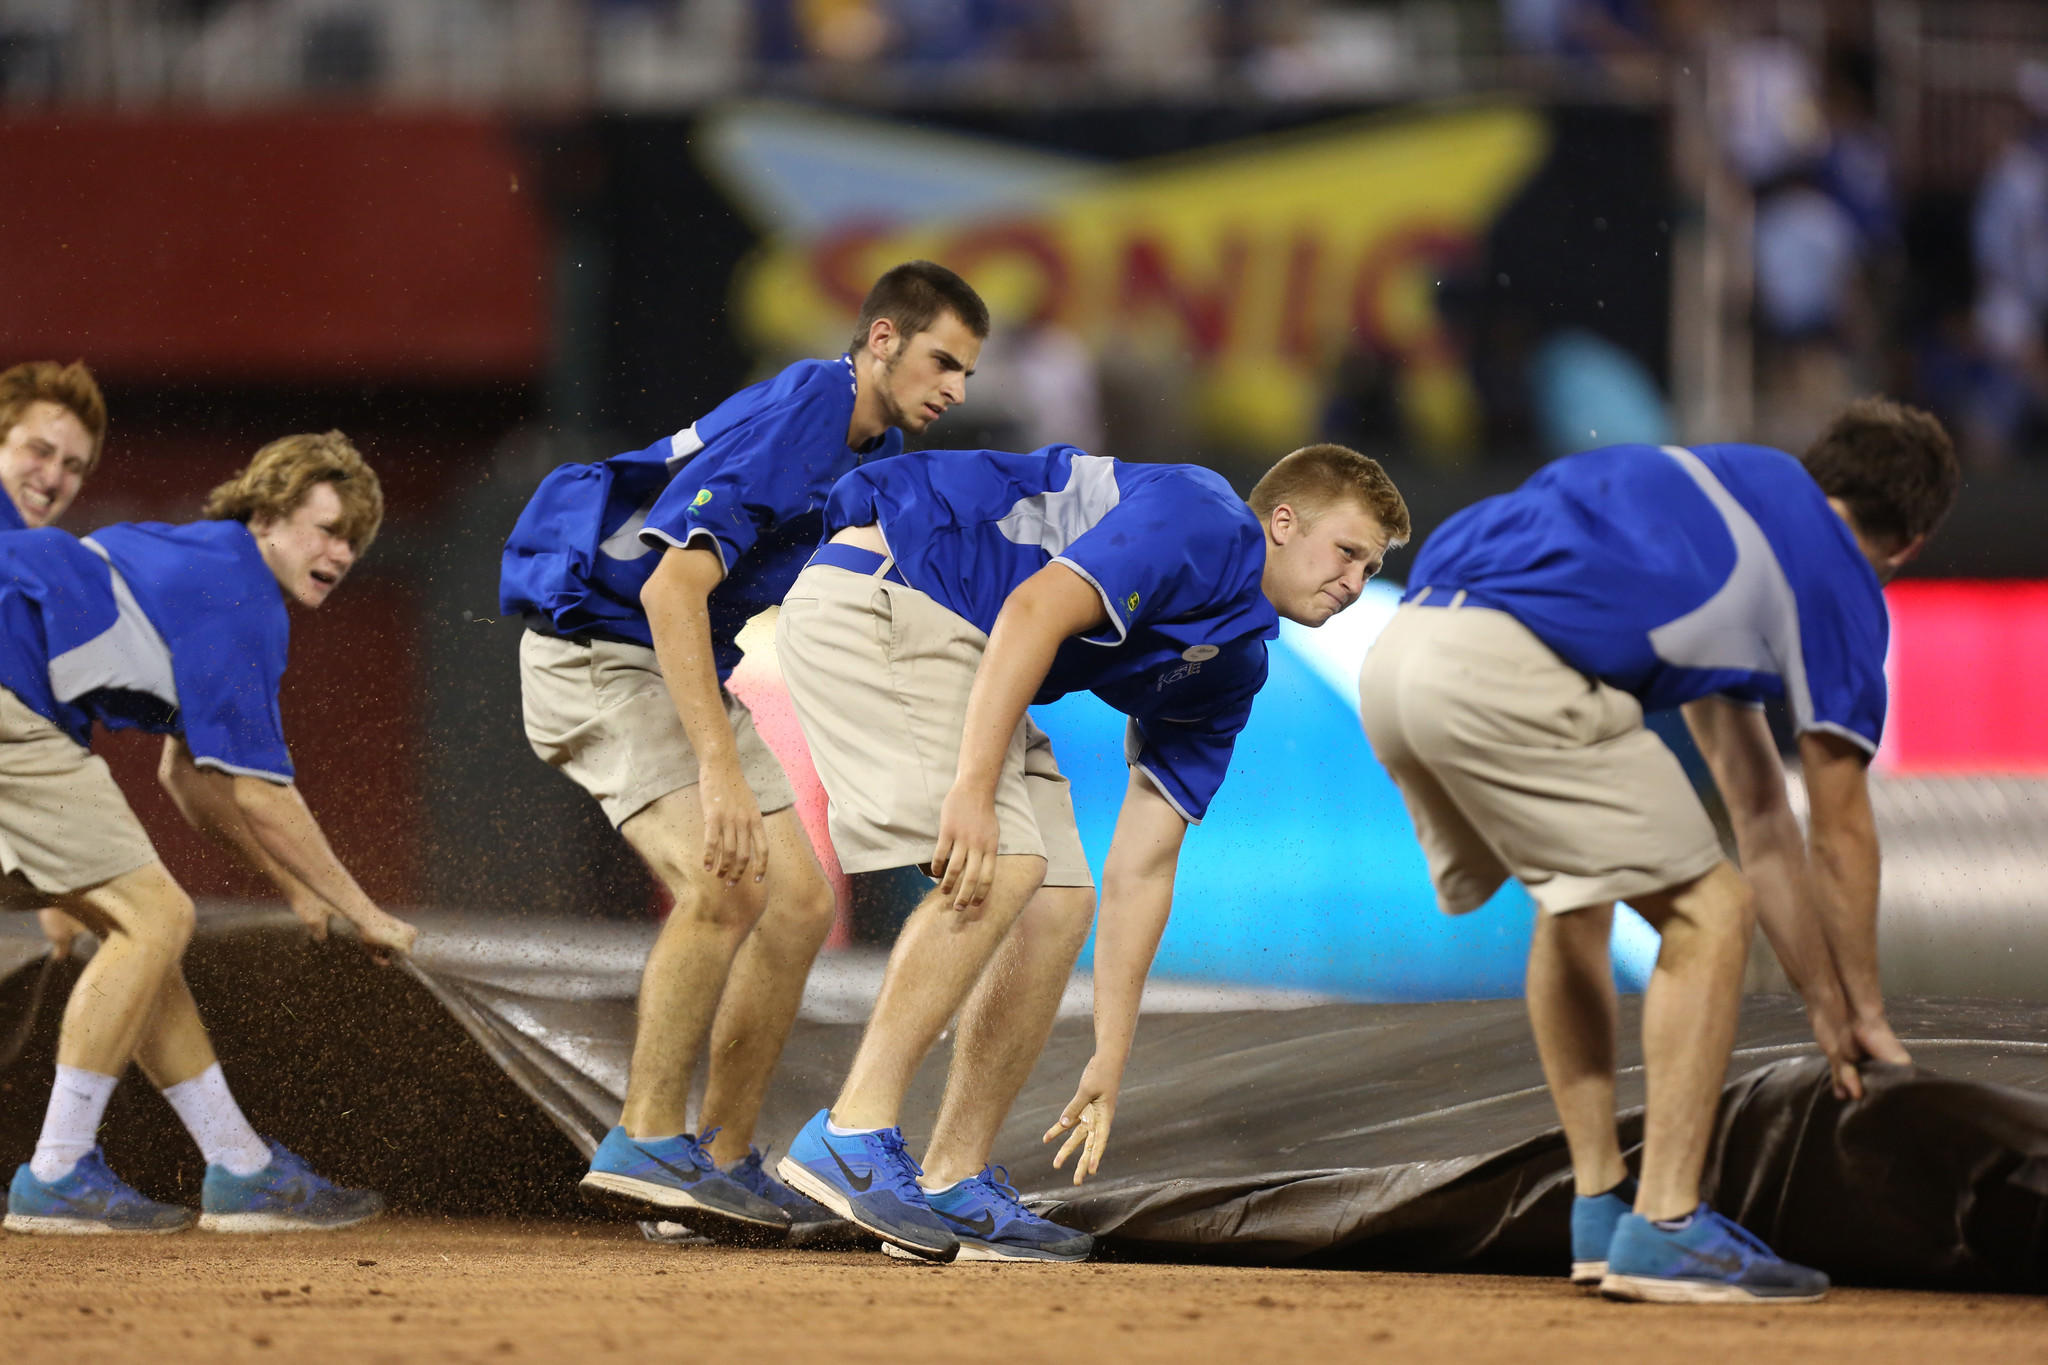 Kansas City Royals' grounds crew bring out the infield tarp as they prepare for a rain storm in the tenth inning during a game between Cleveland Indians and Kansas City Royals at Kauffman Stadium on August 31.